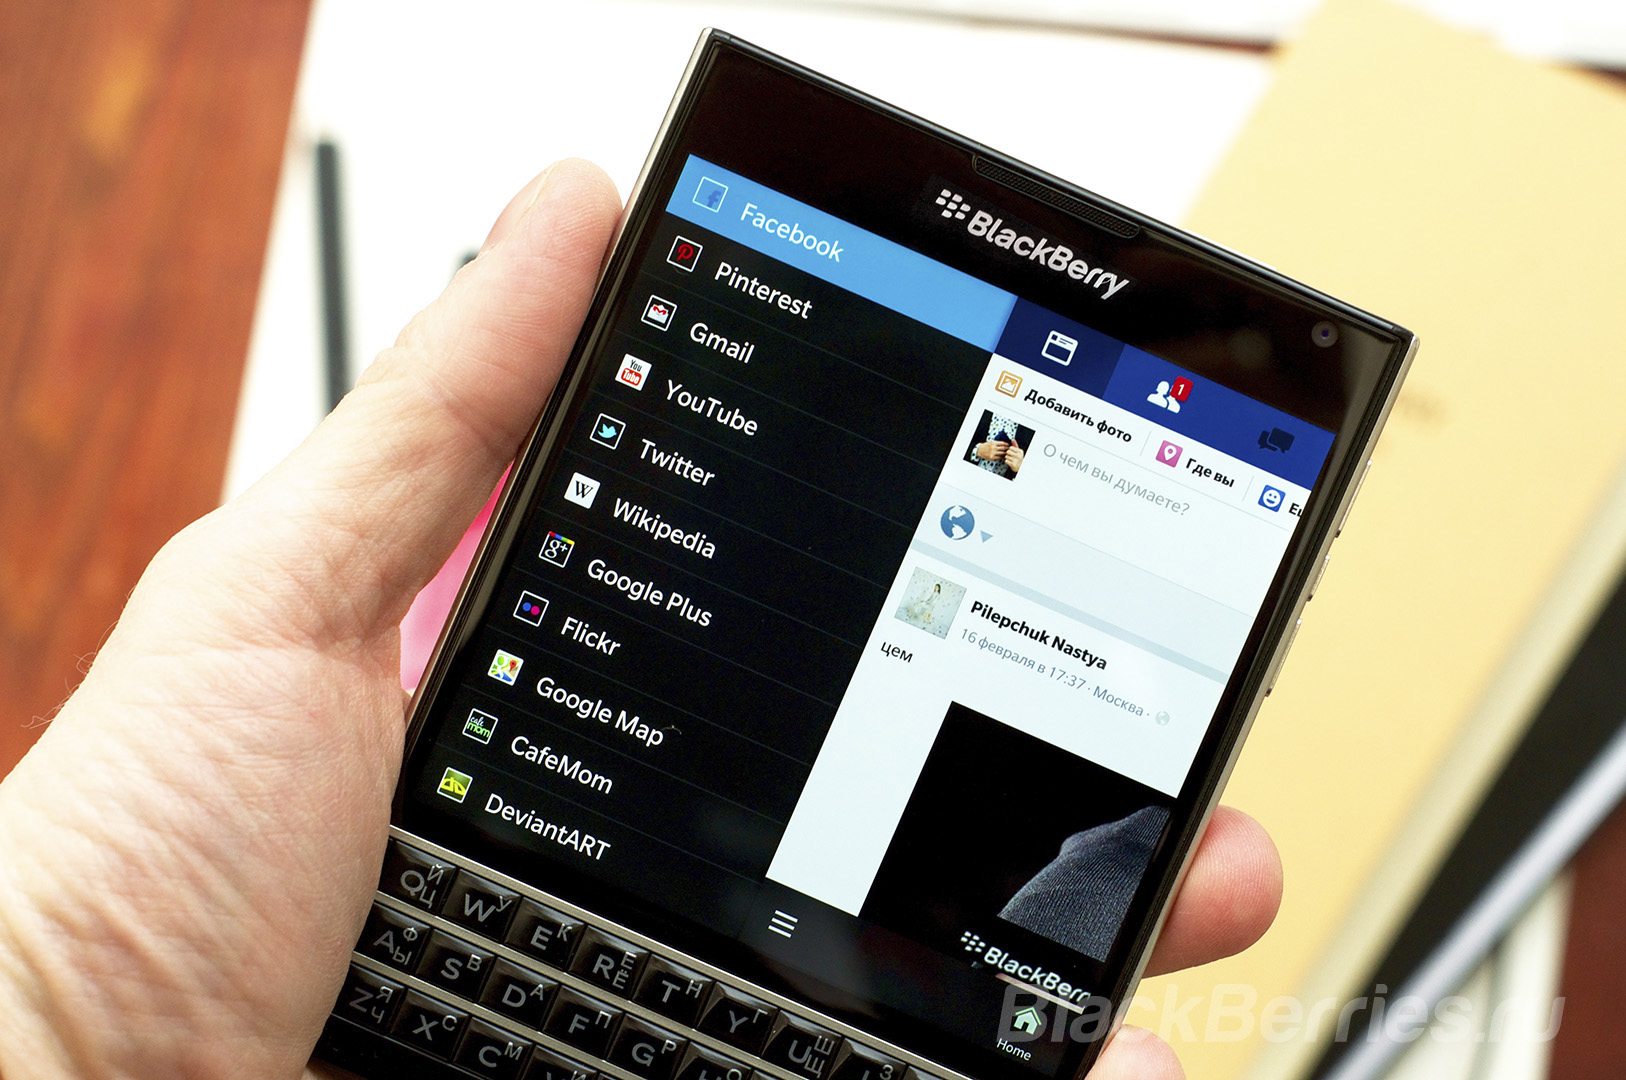 BlackBerry-Apps-20-02-02